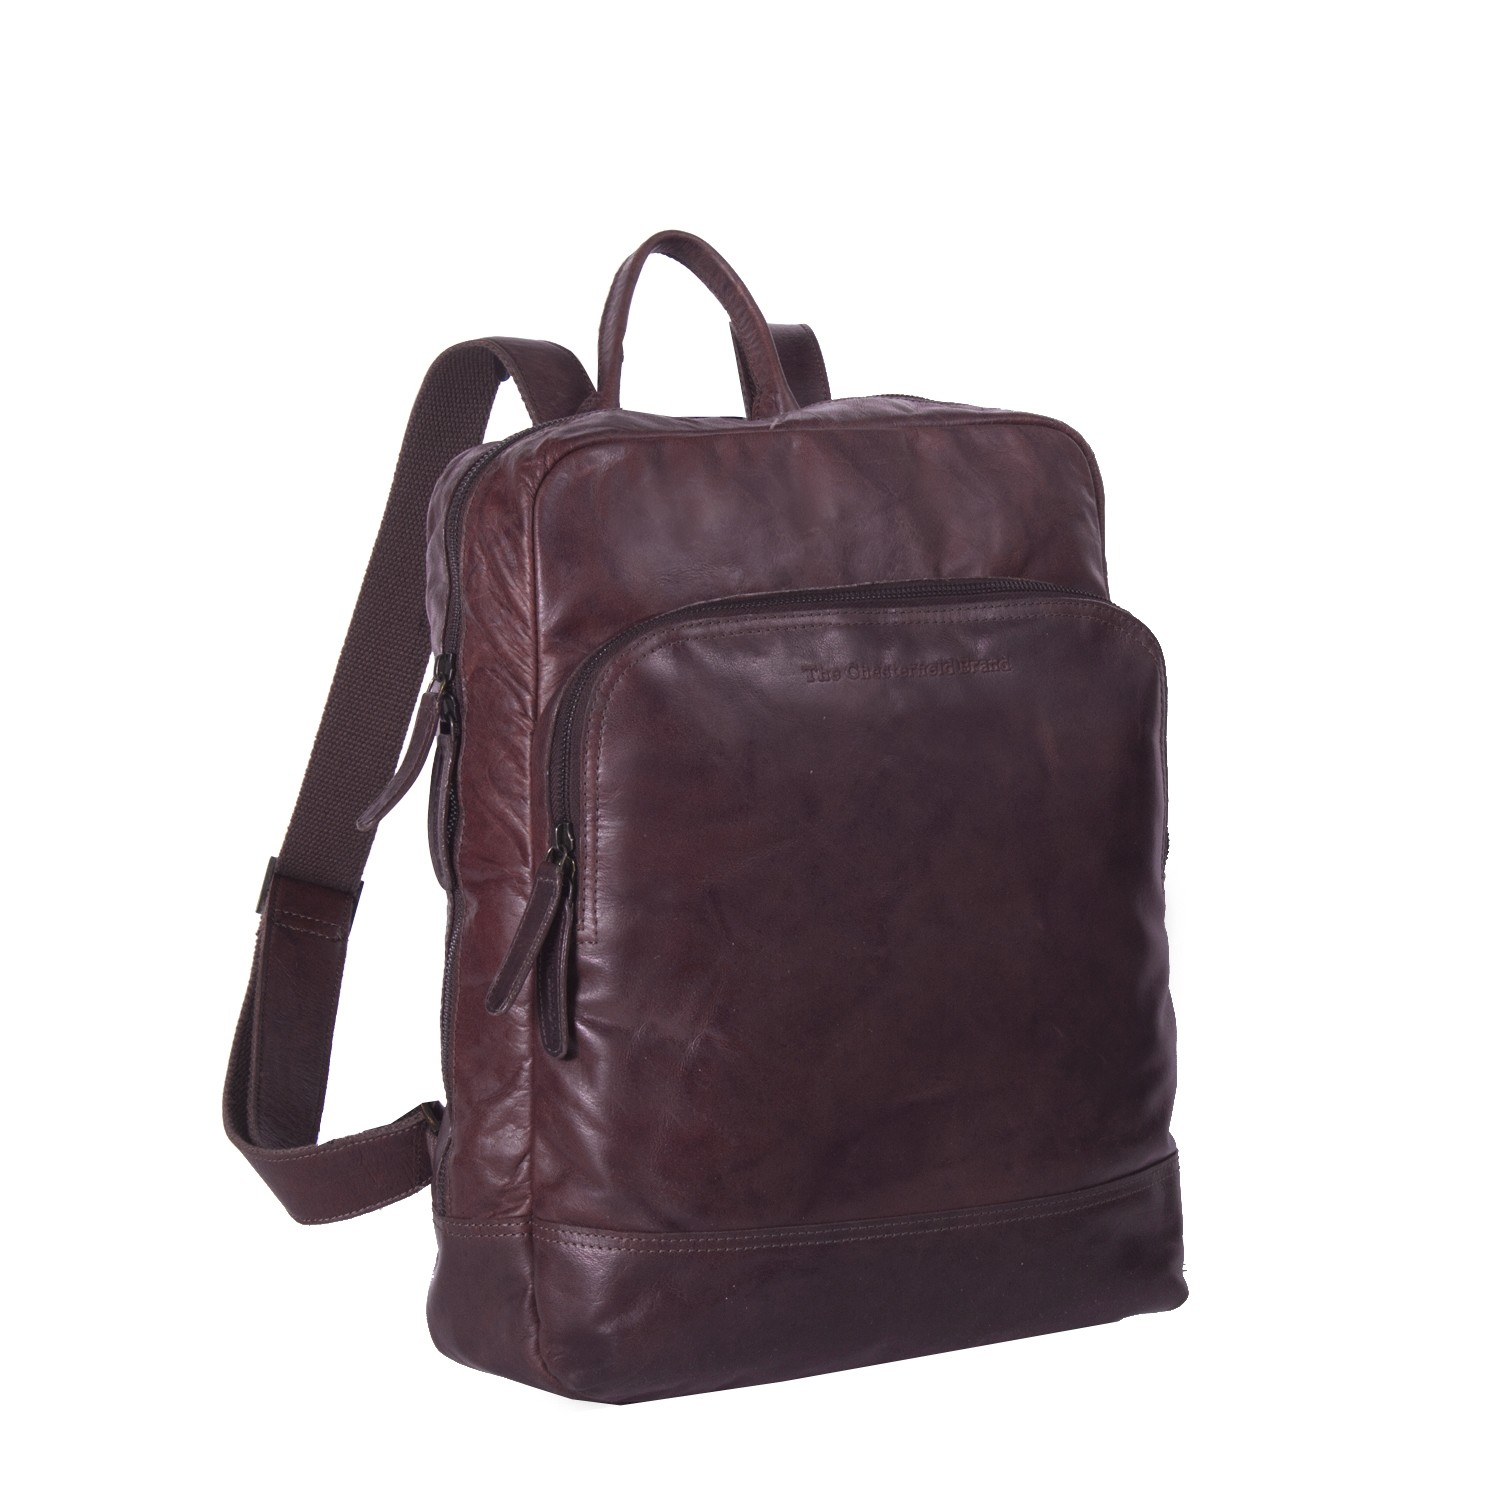 Image de Chesterfield Leather Backpack Brown Mack